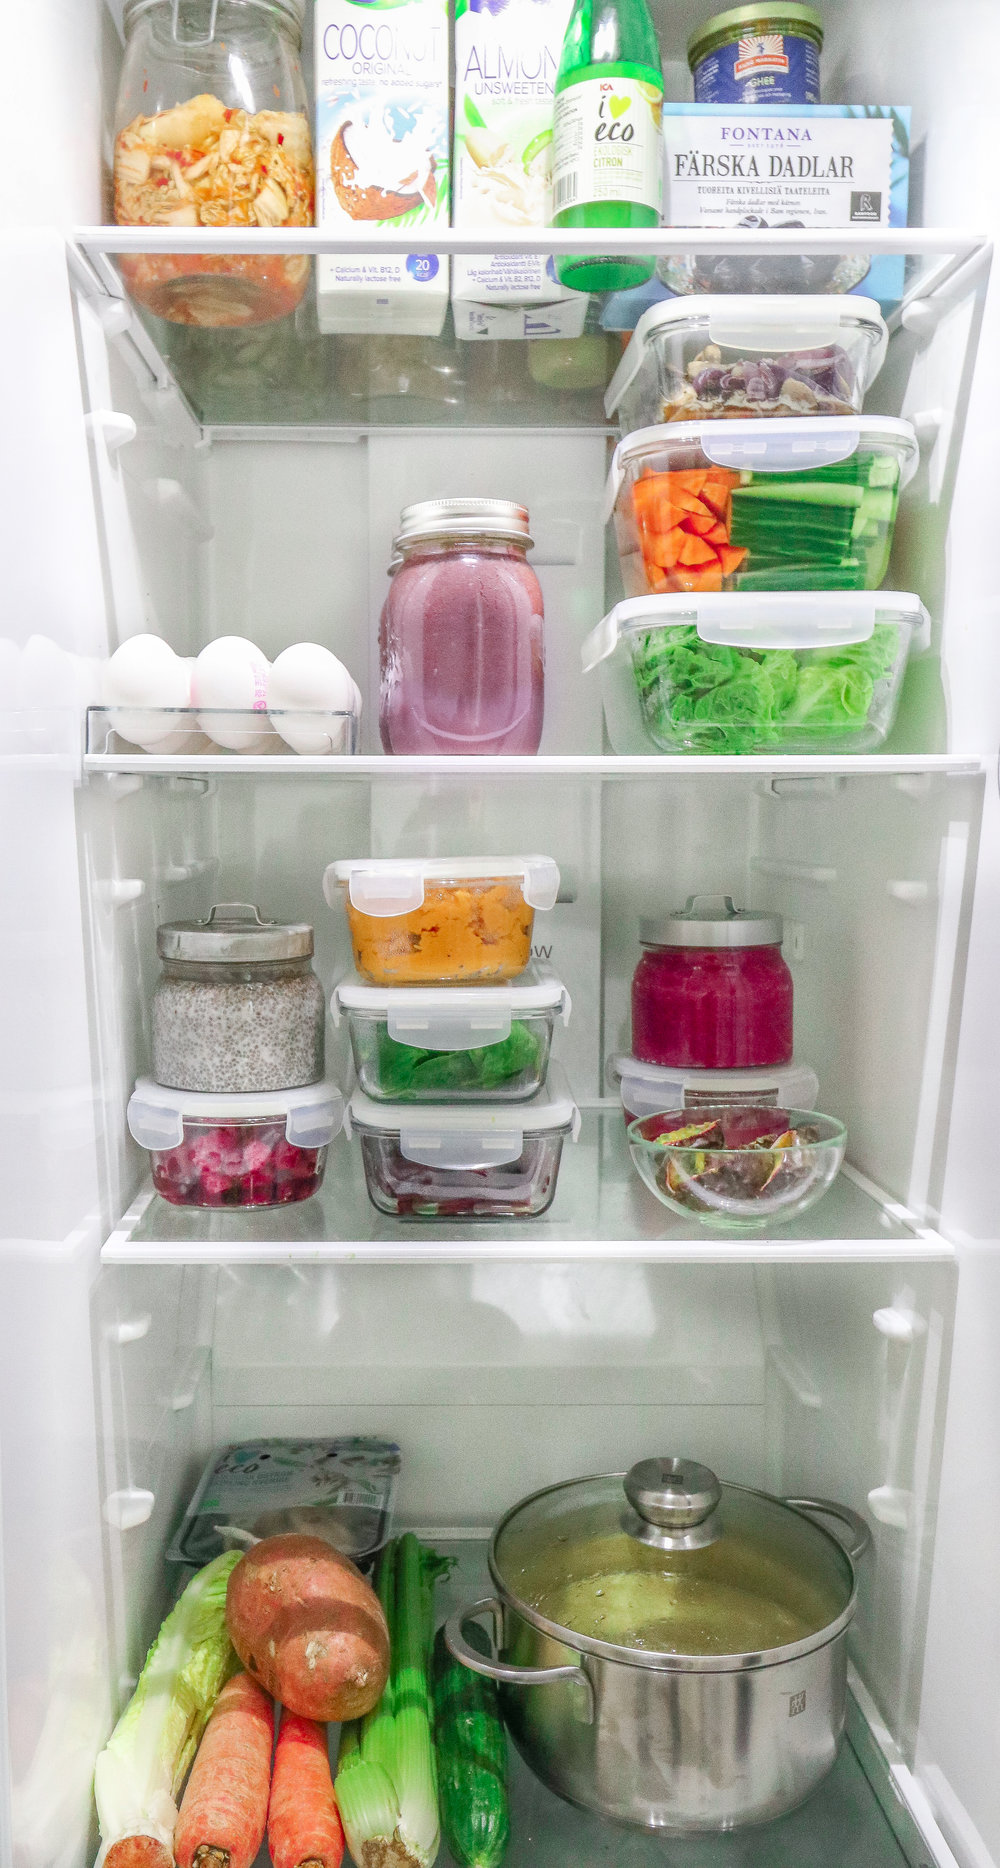 Healthy food prep guide in my fridge Photo by Linda Haggh.jpg